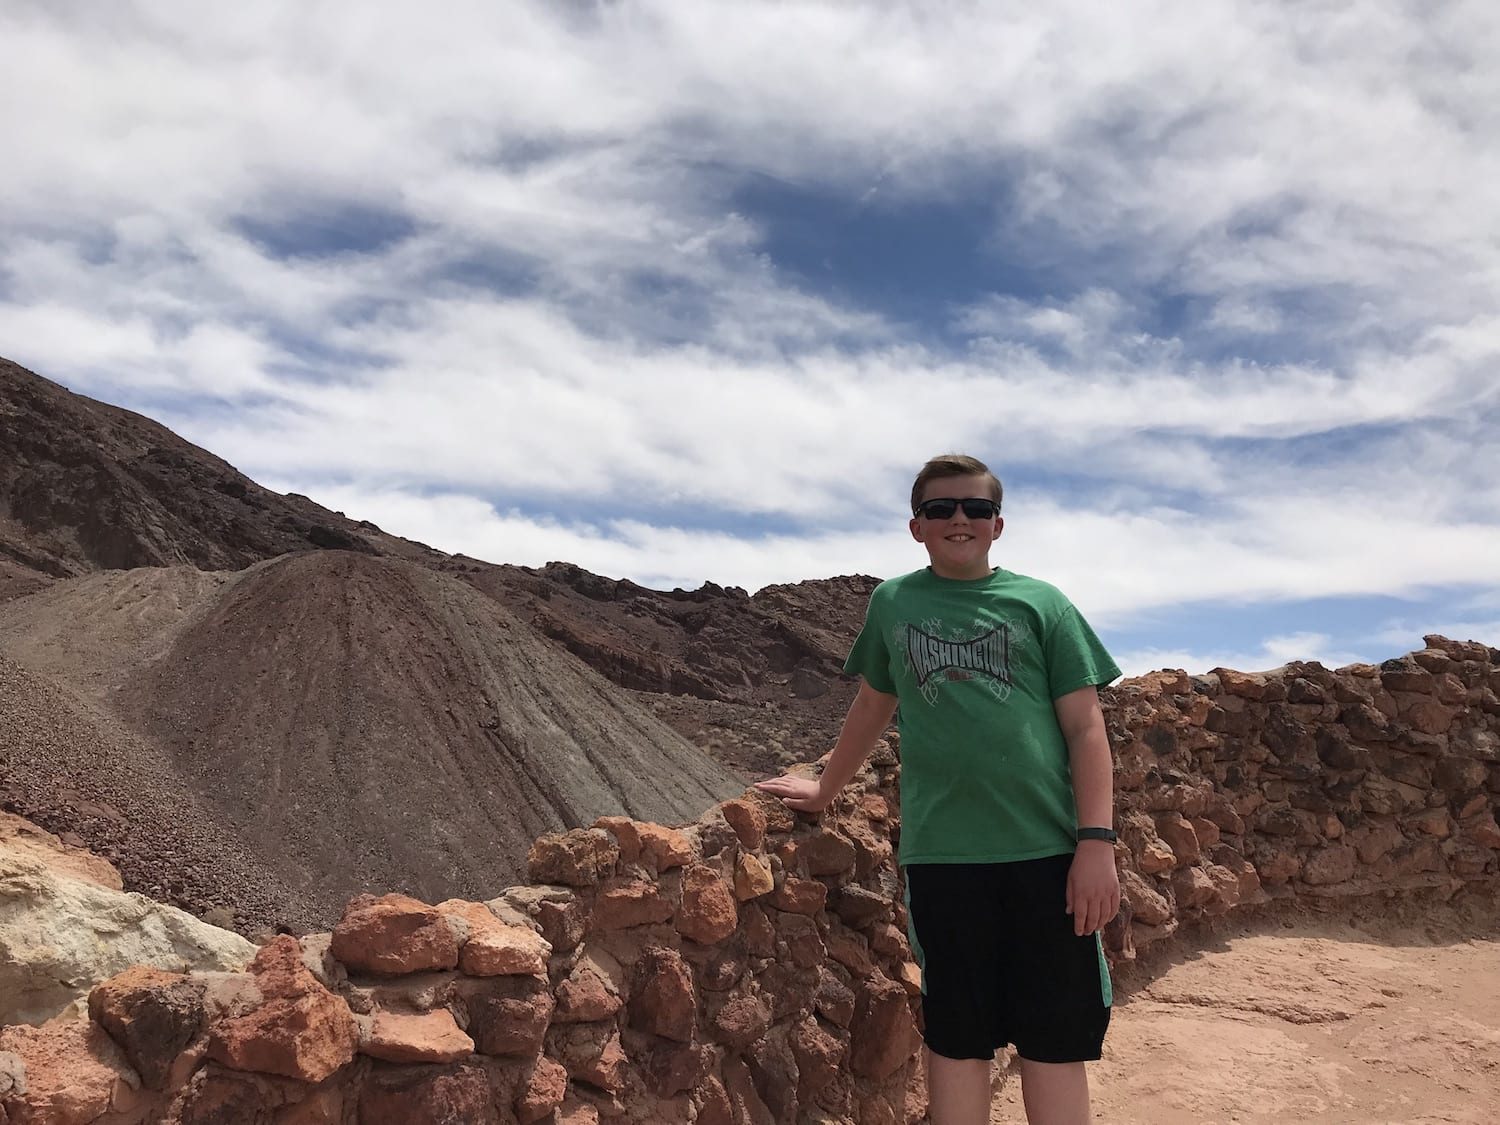 Luke at Calico Ghost Town